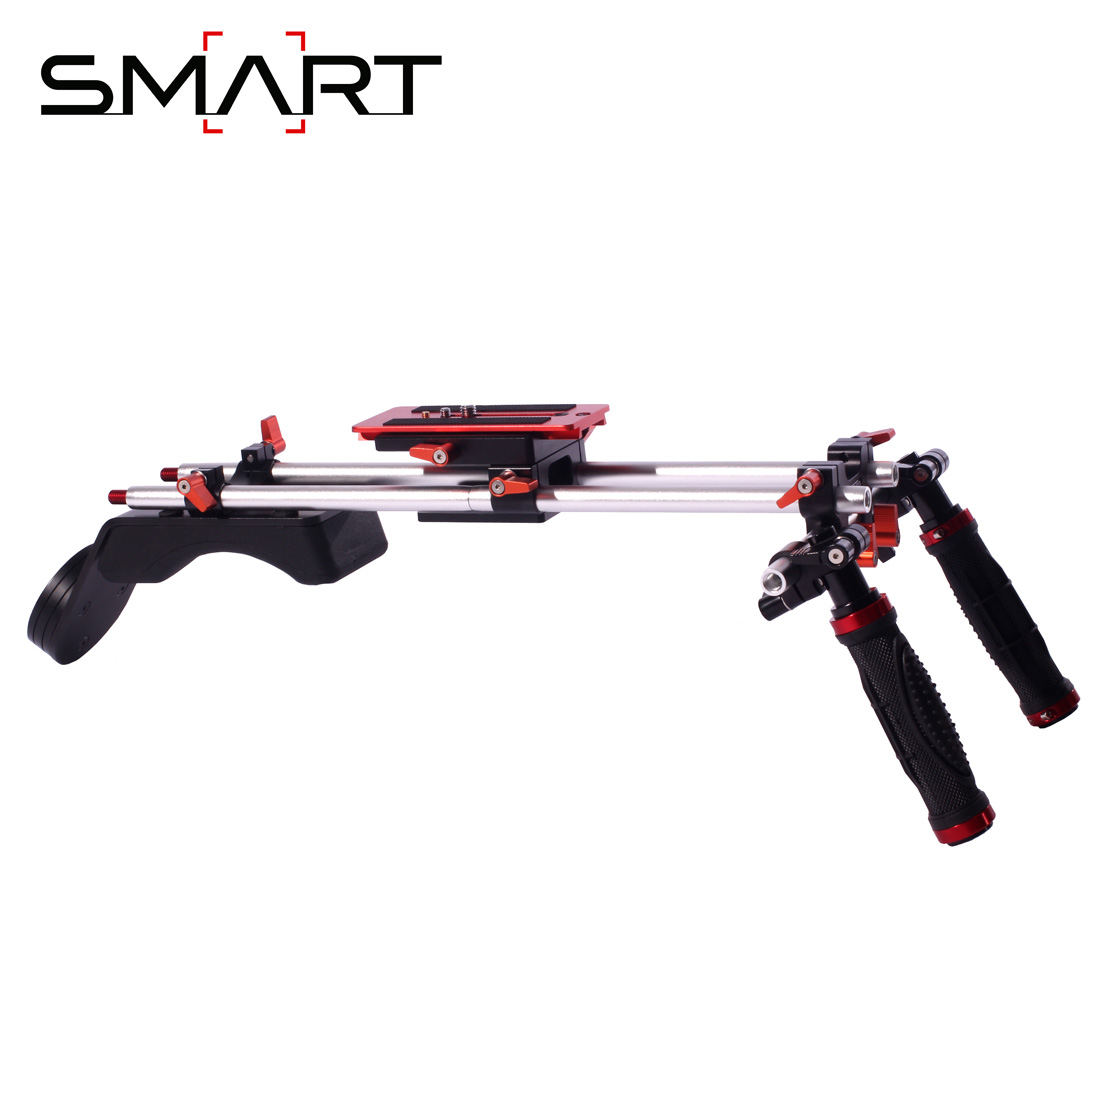 SMART Shoulder DSLR Rigs Set DSM-802